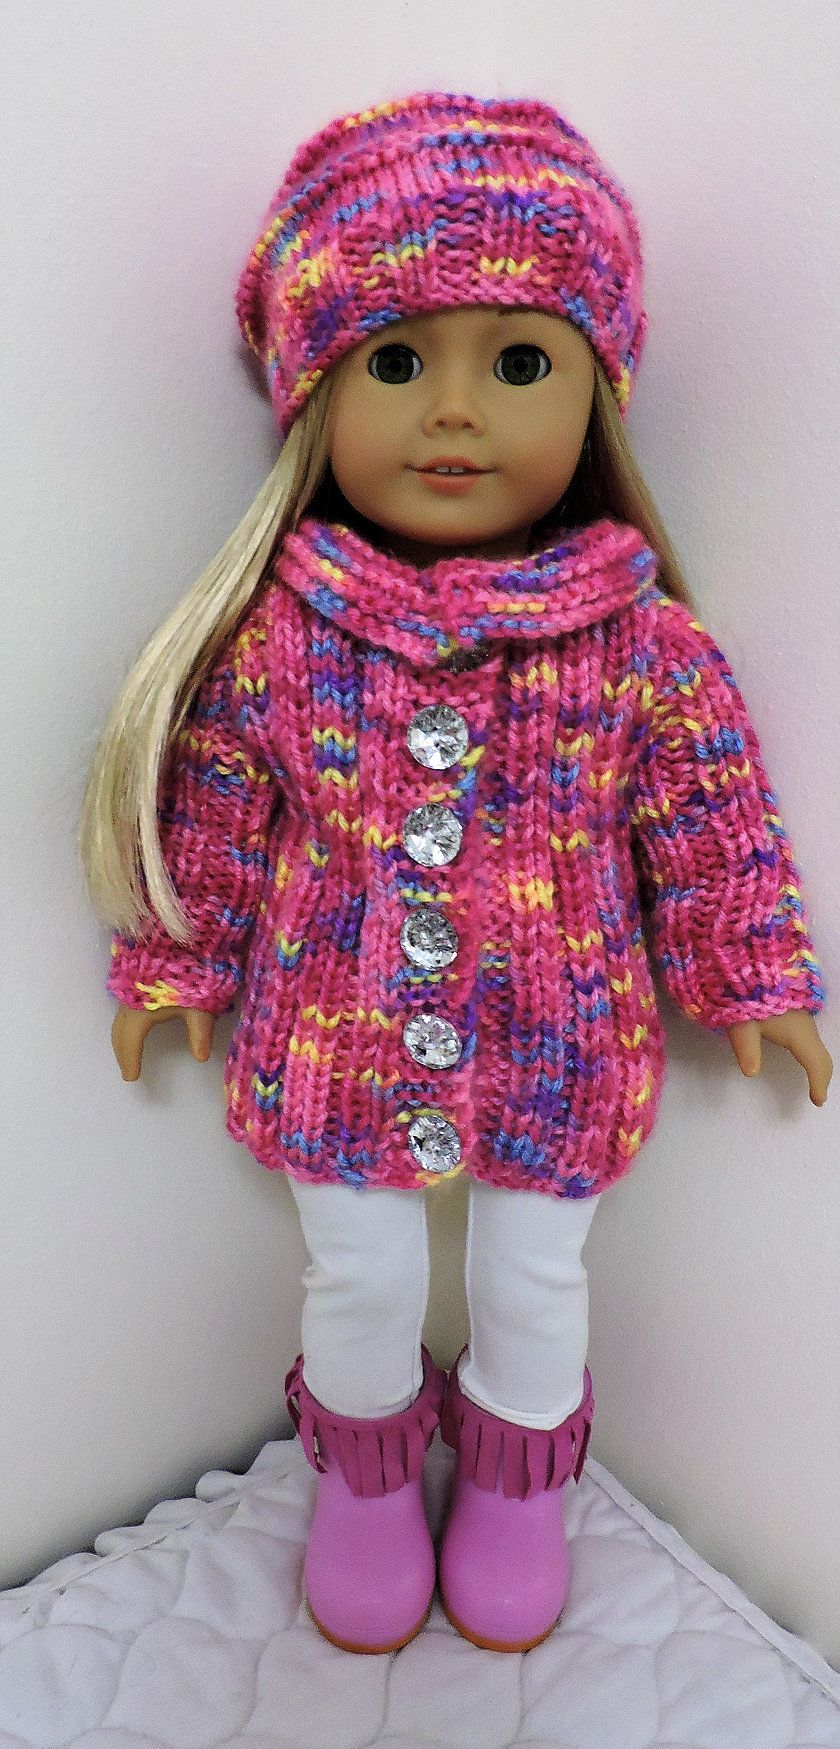 dollie-clothes | Pink Jacket & Hat AMG *NEW* | 18"|840|1749|?|en|2|4087121bd095a3a7db77fa3a05337290|False|UNLIKELY|0.3051653206348419